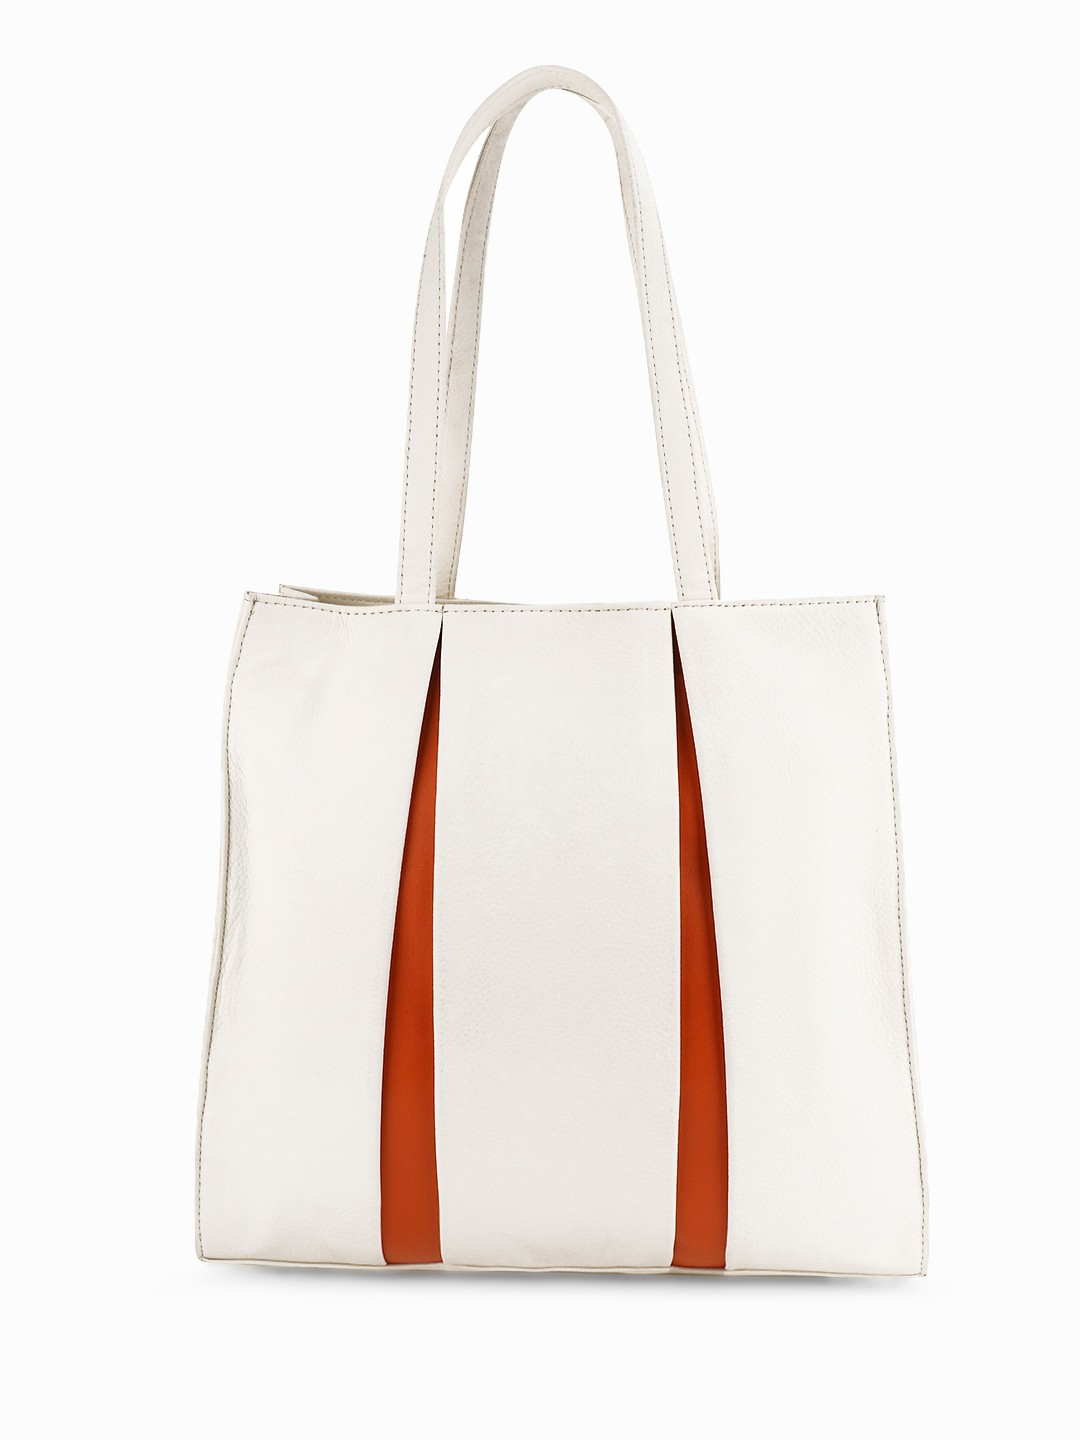 Paris Belle White/Orange Contrast Pleated Tote Bag 1